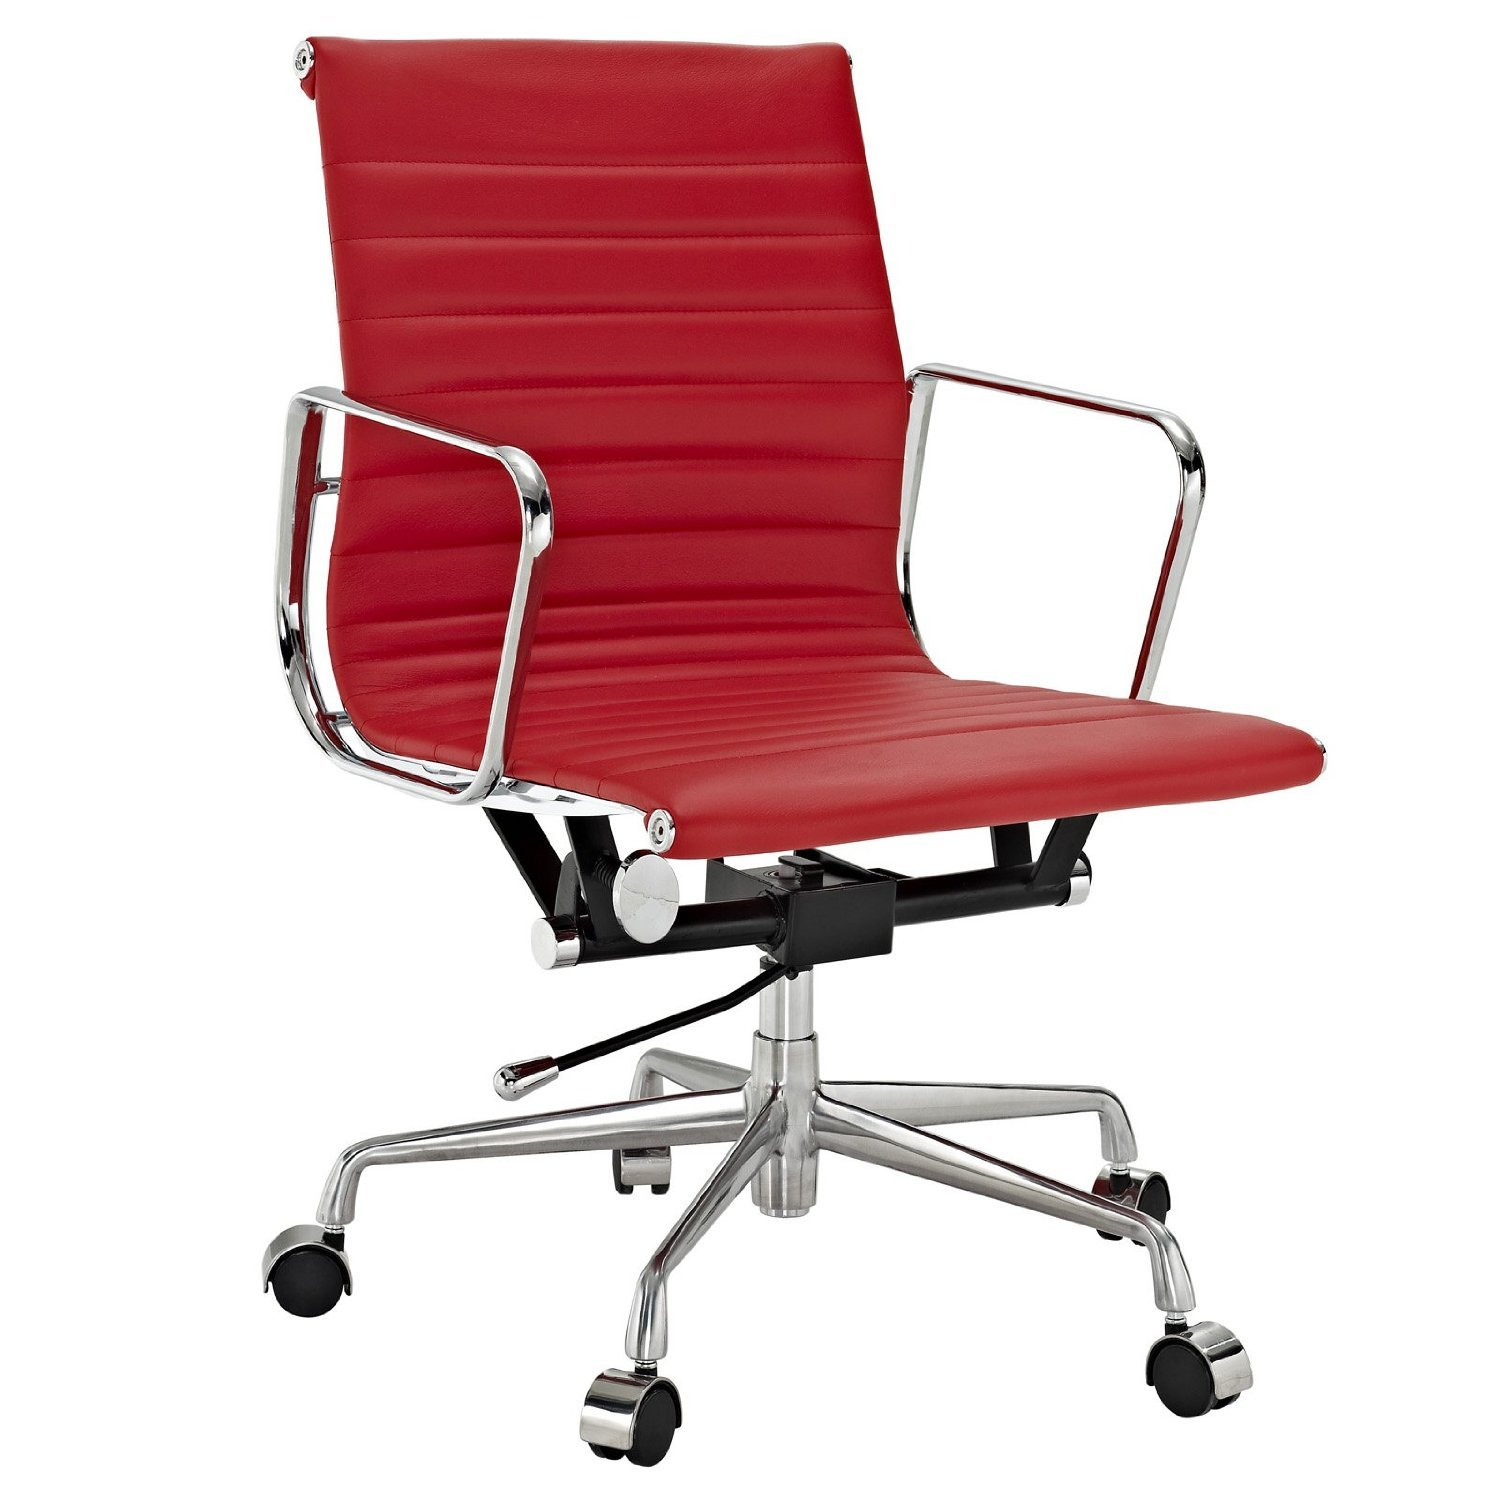 Office chair eames Eames Aluminum Amazoncom Emodern Furniture Eames Style Aluminum Group Management Office Chair Reproduction Leather Brown Kitchen Dining Amazoncom Amazoncom Emodern Furniture Eames Style Aluminum Group Management